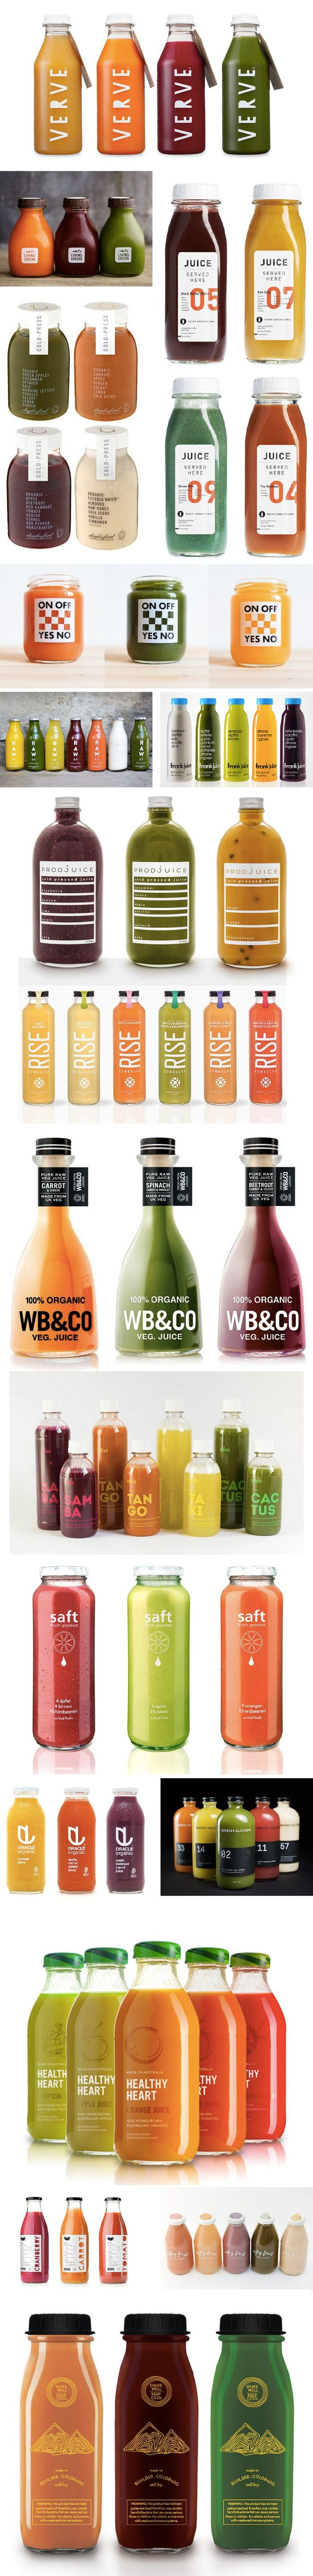 Juice packaging en masse                                                                                                                                                                                 More